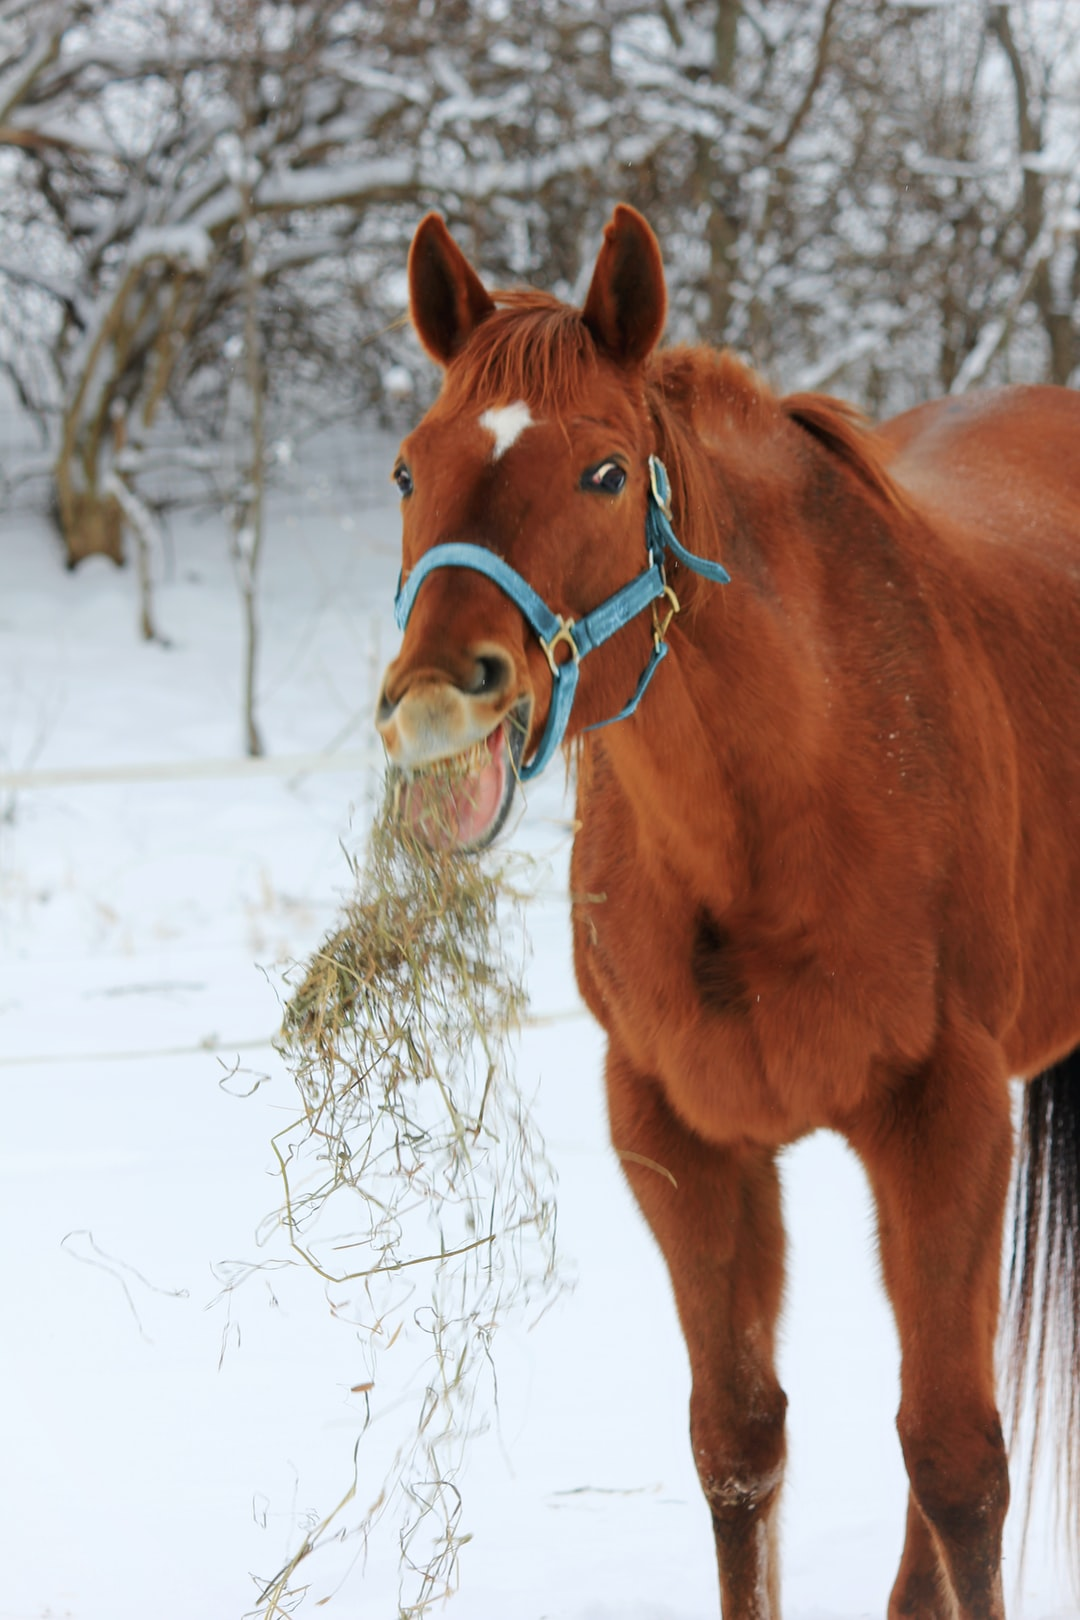 A brown thoroughbred race horse throws hay in the snow during winter while wearing a blue halter.